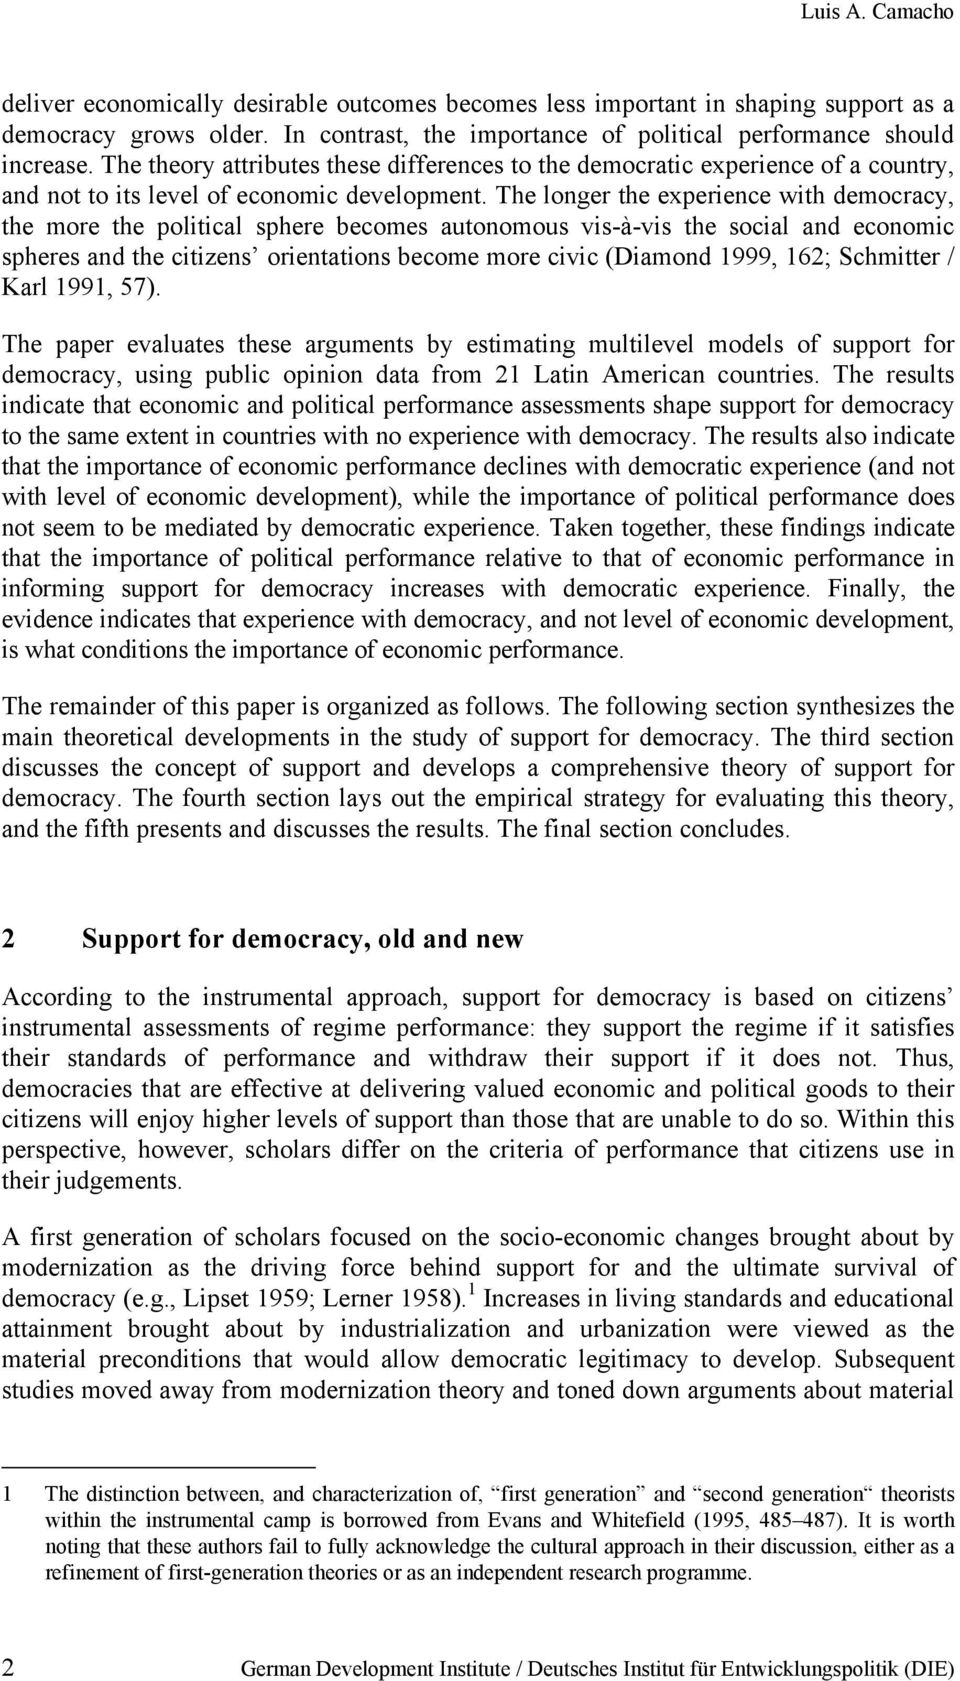 The longer the experience with democracy, the more the political sphere becomes autonomous vis-à-vis the social and economic spheres and the citizens orientations become more civic (Diamond 1999,